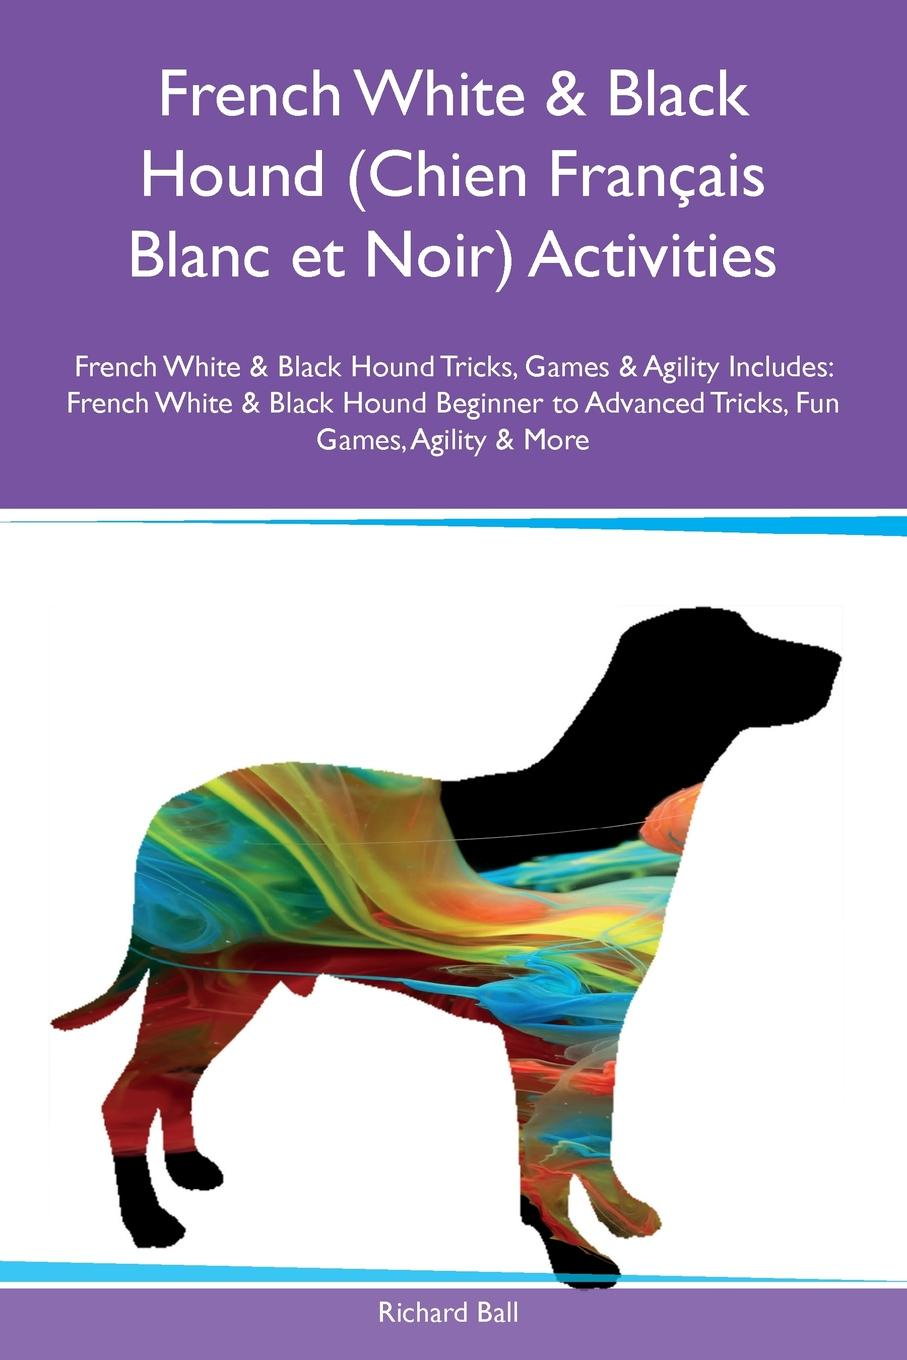 Richard Ball French White & Black Hound (Chien Francais Blanc et Noir) Activities French White & Black Hound Tricks, Games & Agility Includes. French White & Black Hound Beginner to Advanced Tricks, Fun Games, Agility & More цена